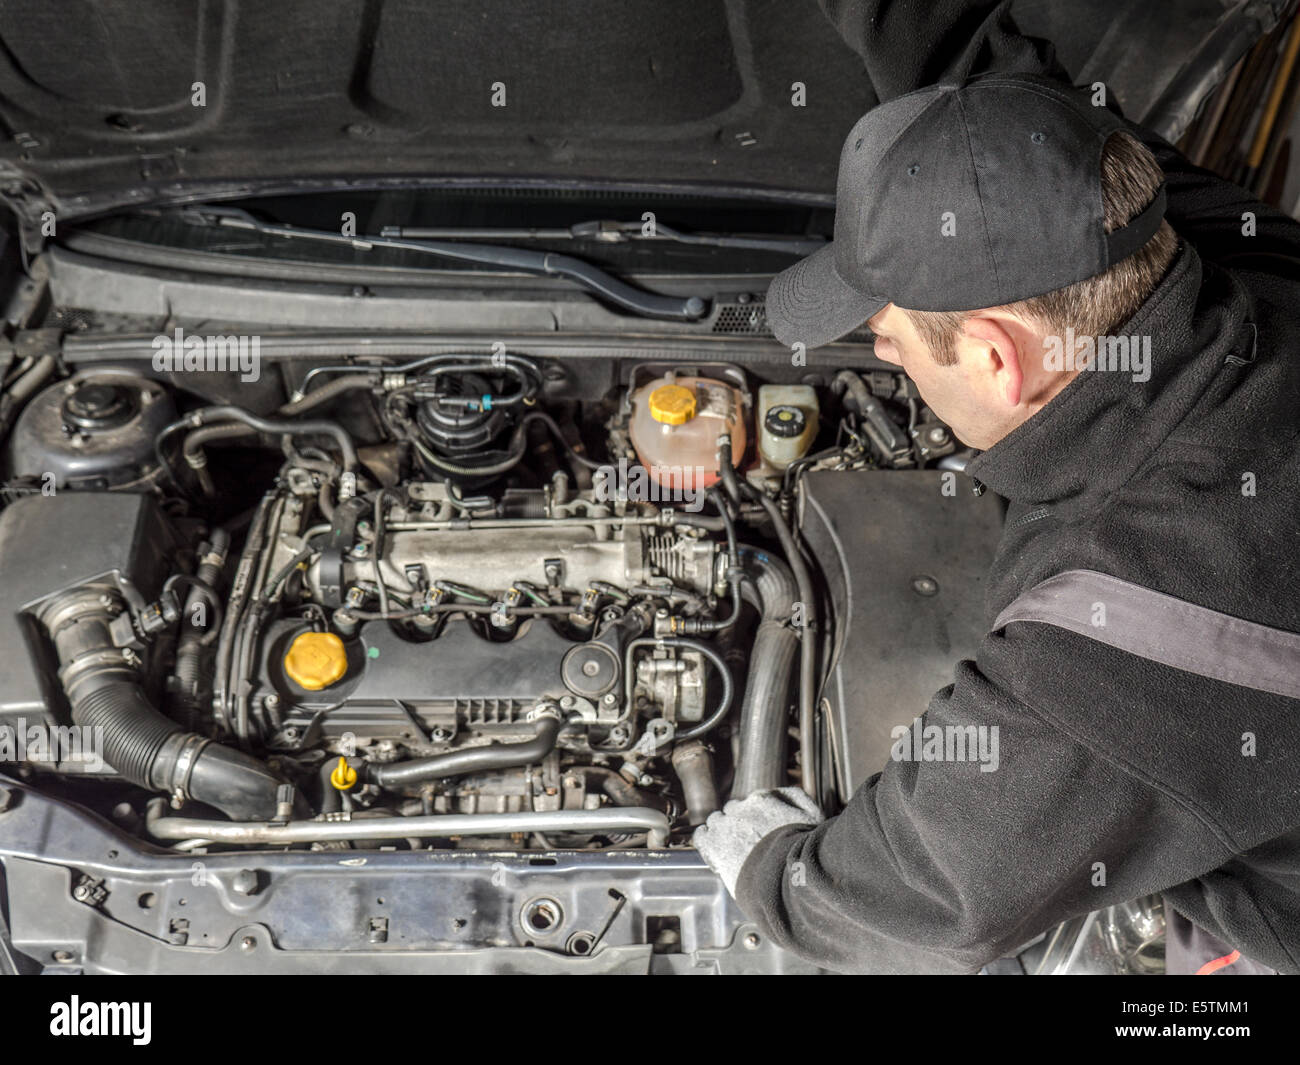 Auto mechanic inspecting car engine compartment - Stock Image